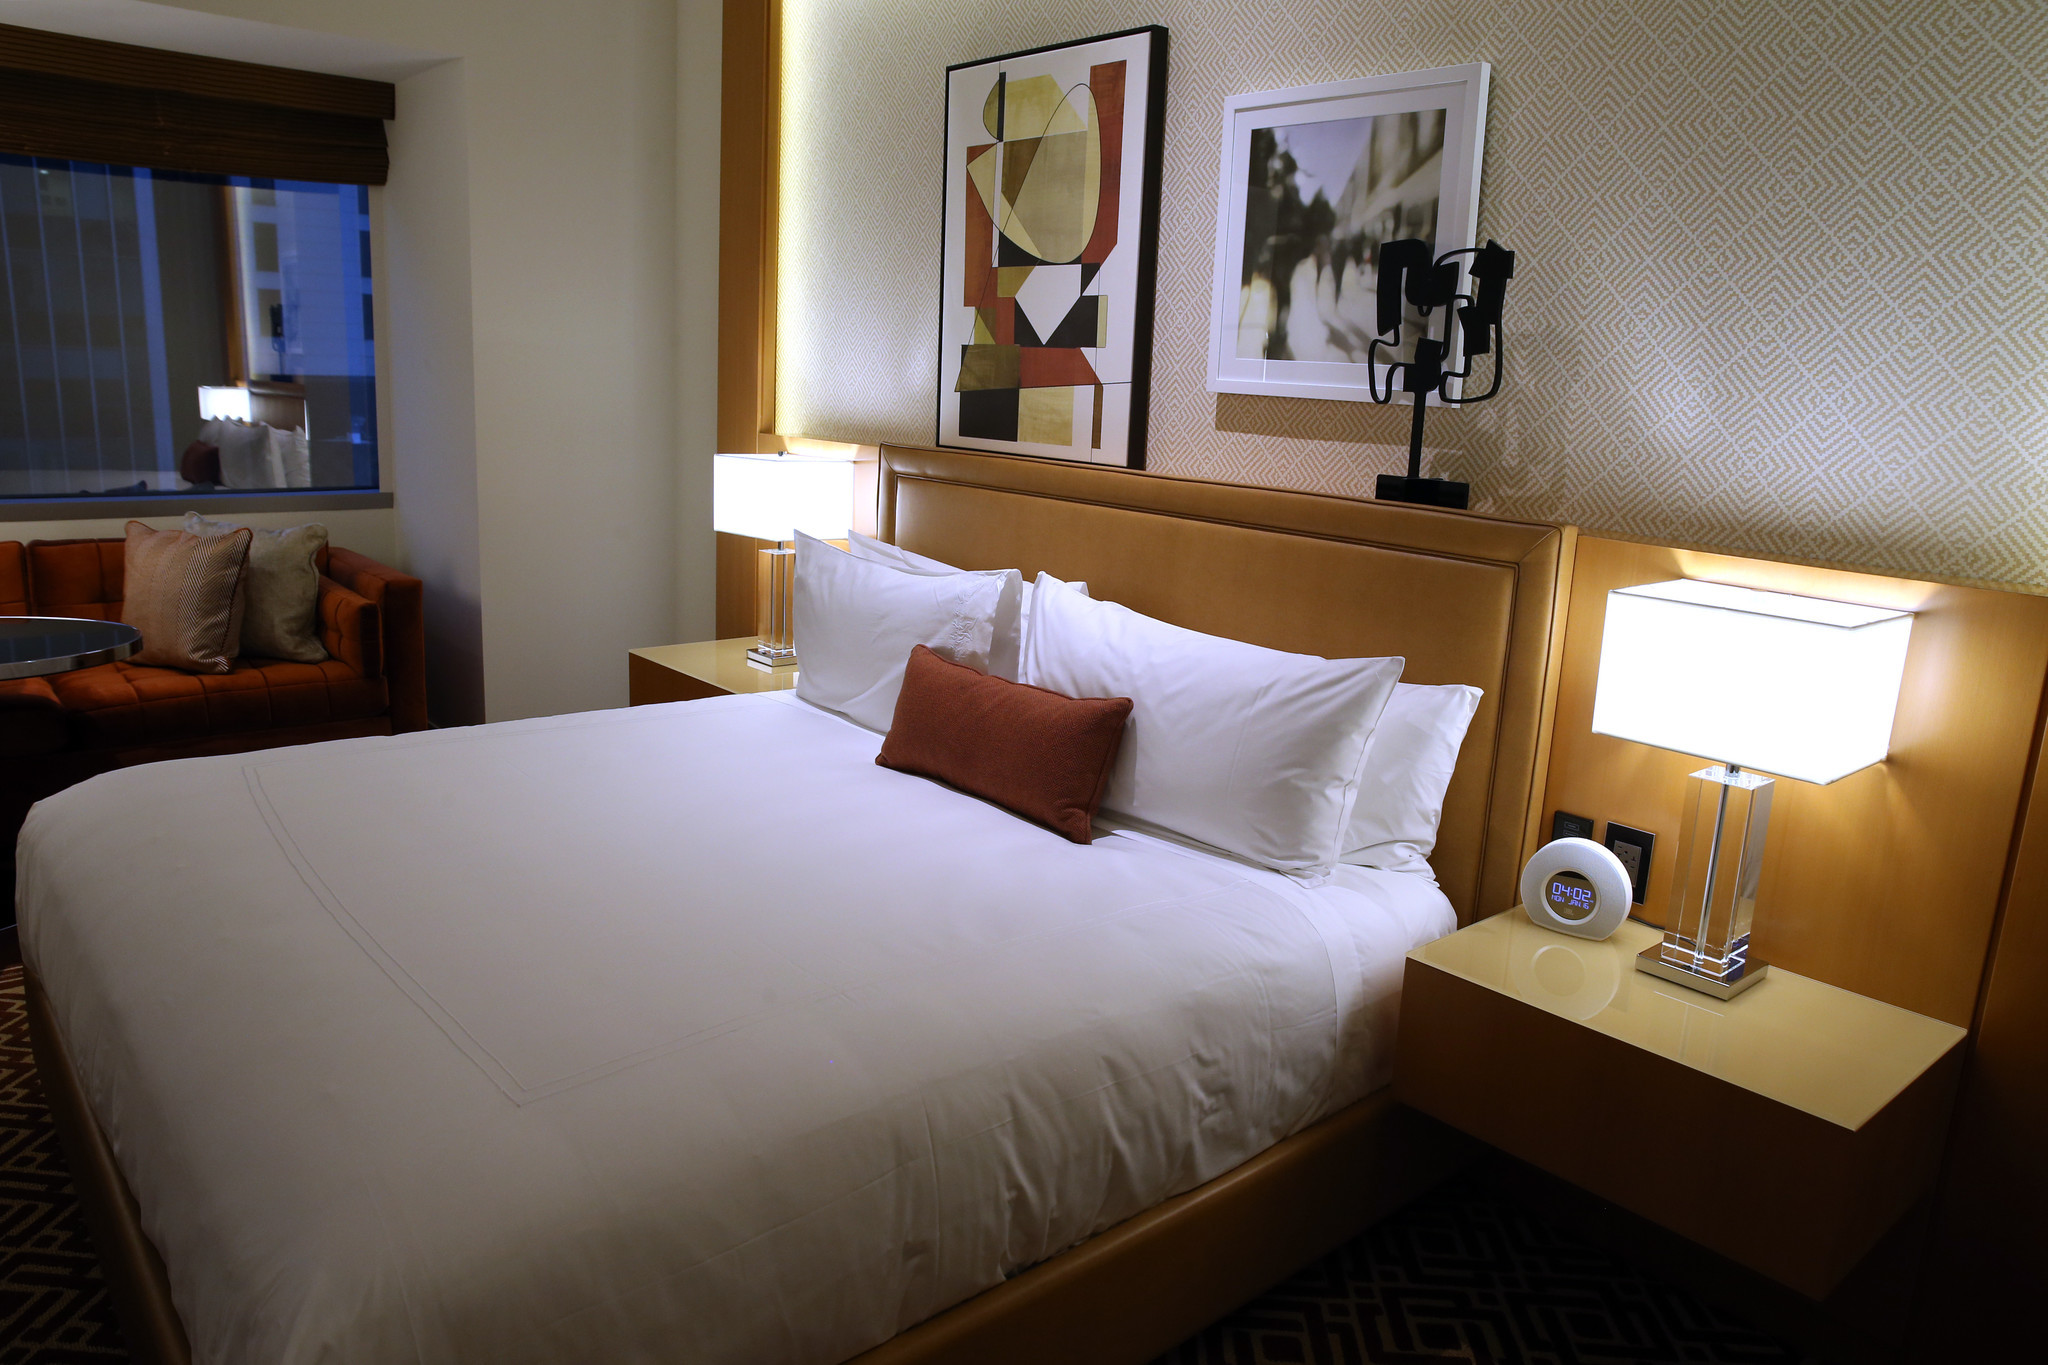 Conrad Chicago hotel offering rooms for $11.14 a night, starting Tuesday